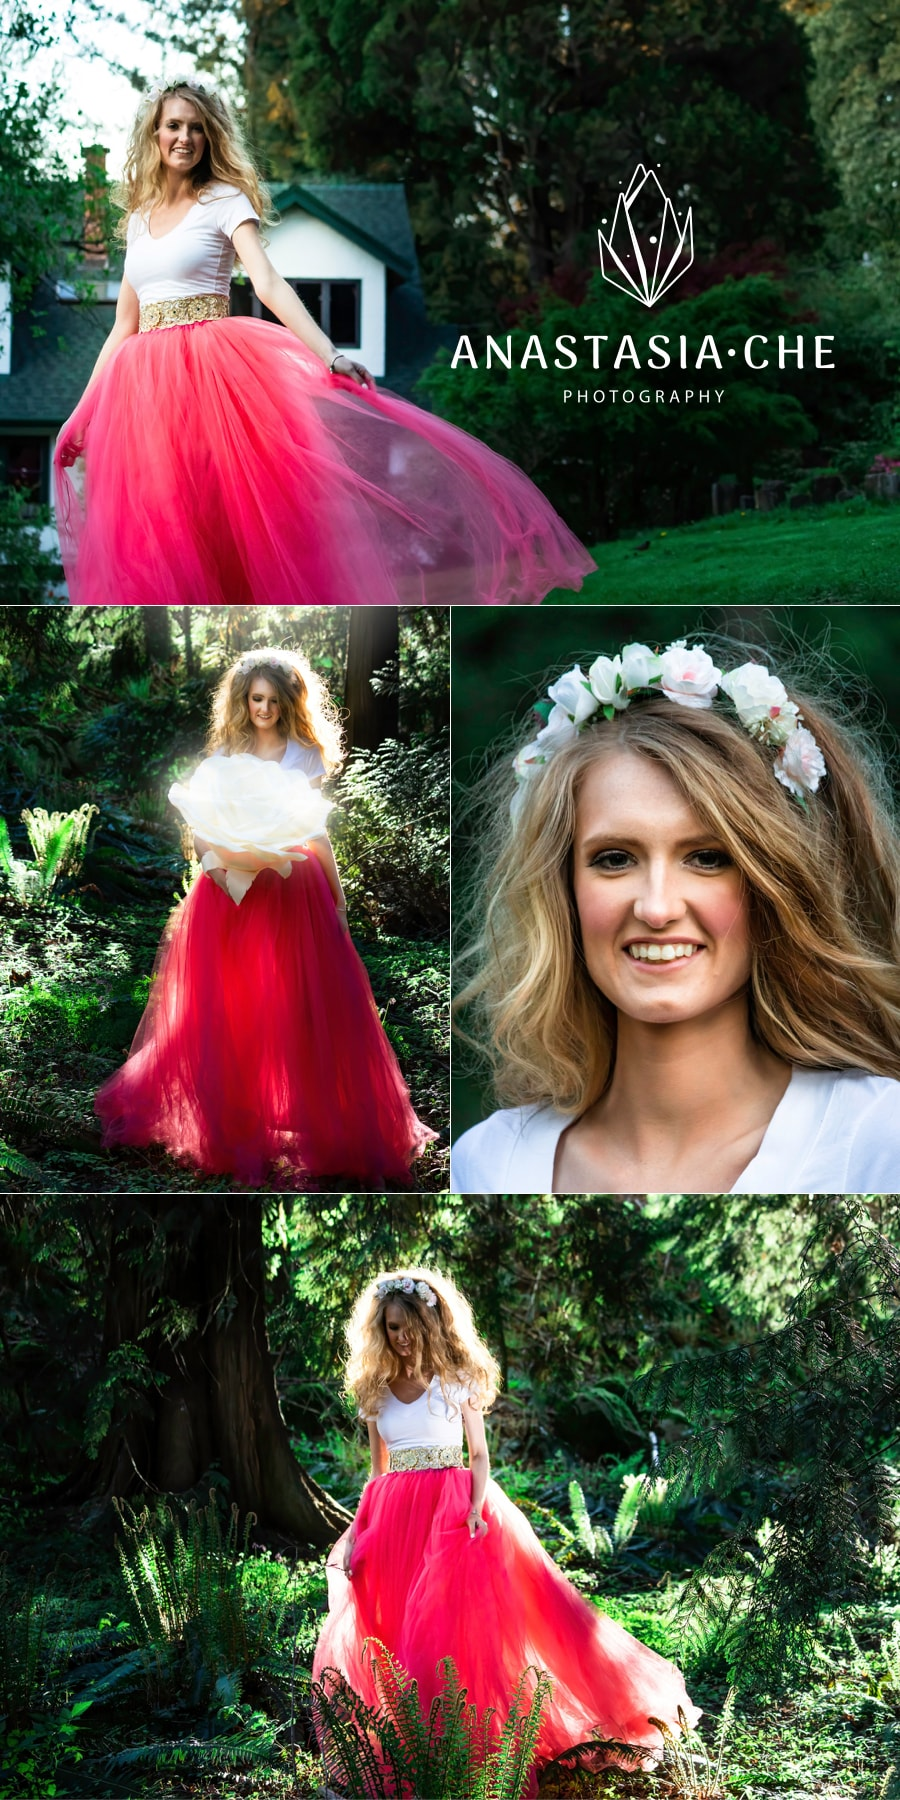 fairy tale photoshoot with a pink maxi skirt